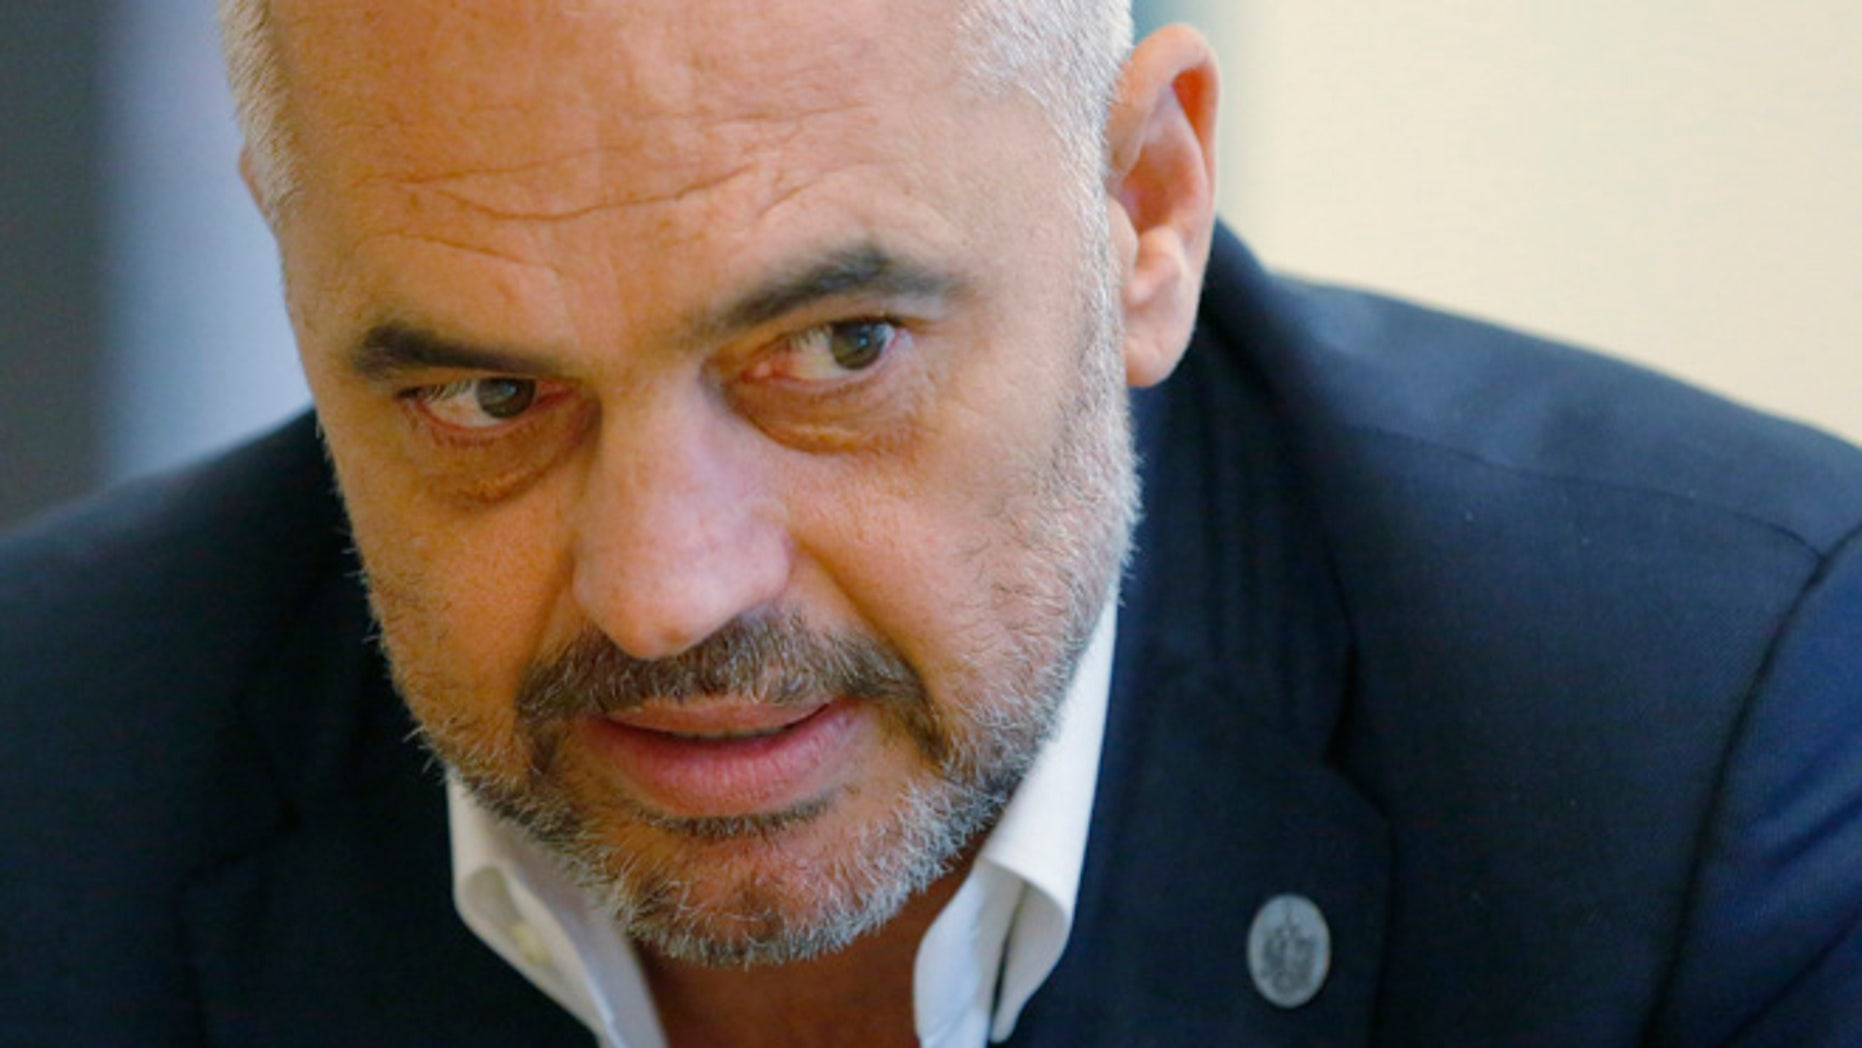 Albanian Prime Minister Edi Rama could face prosecution stemming from an illegal donation to President Obama's campaign, passed along through  New Jersey limo driver.